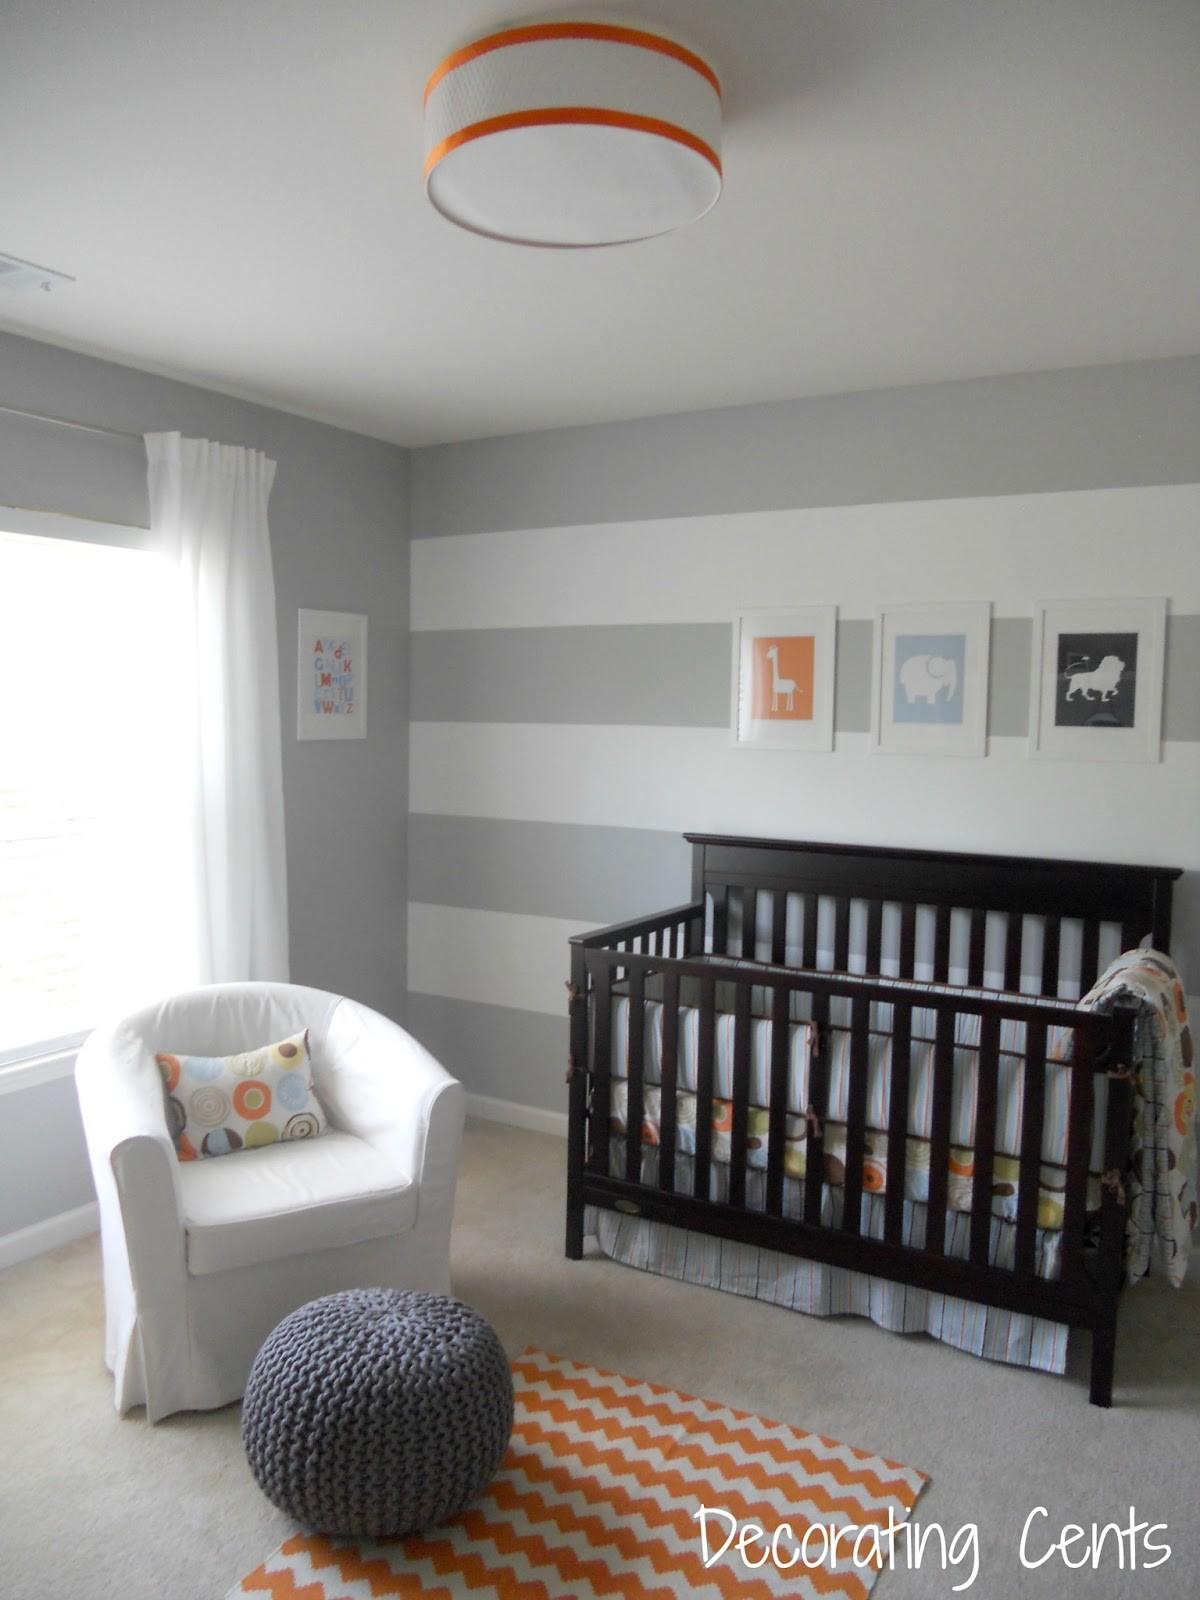 Decorating Cents Nursery Sources